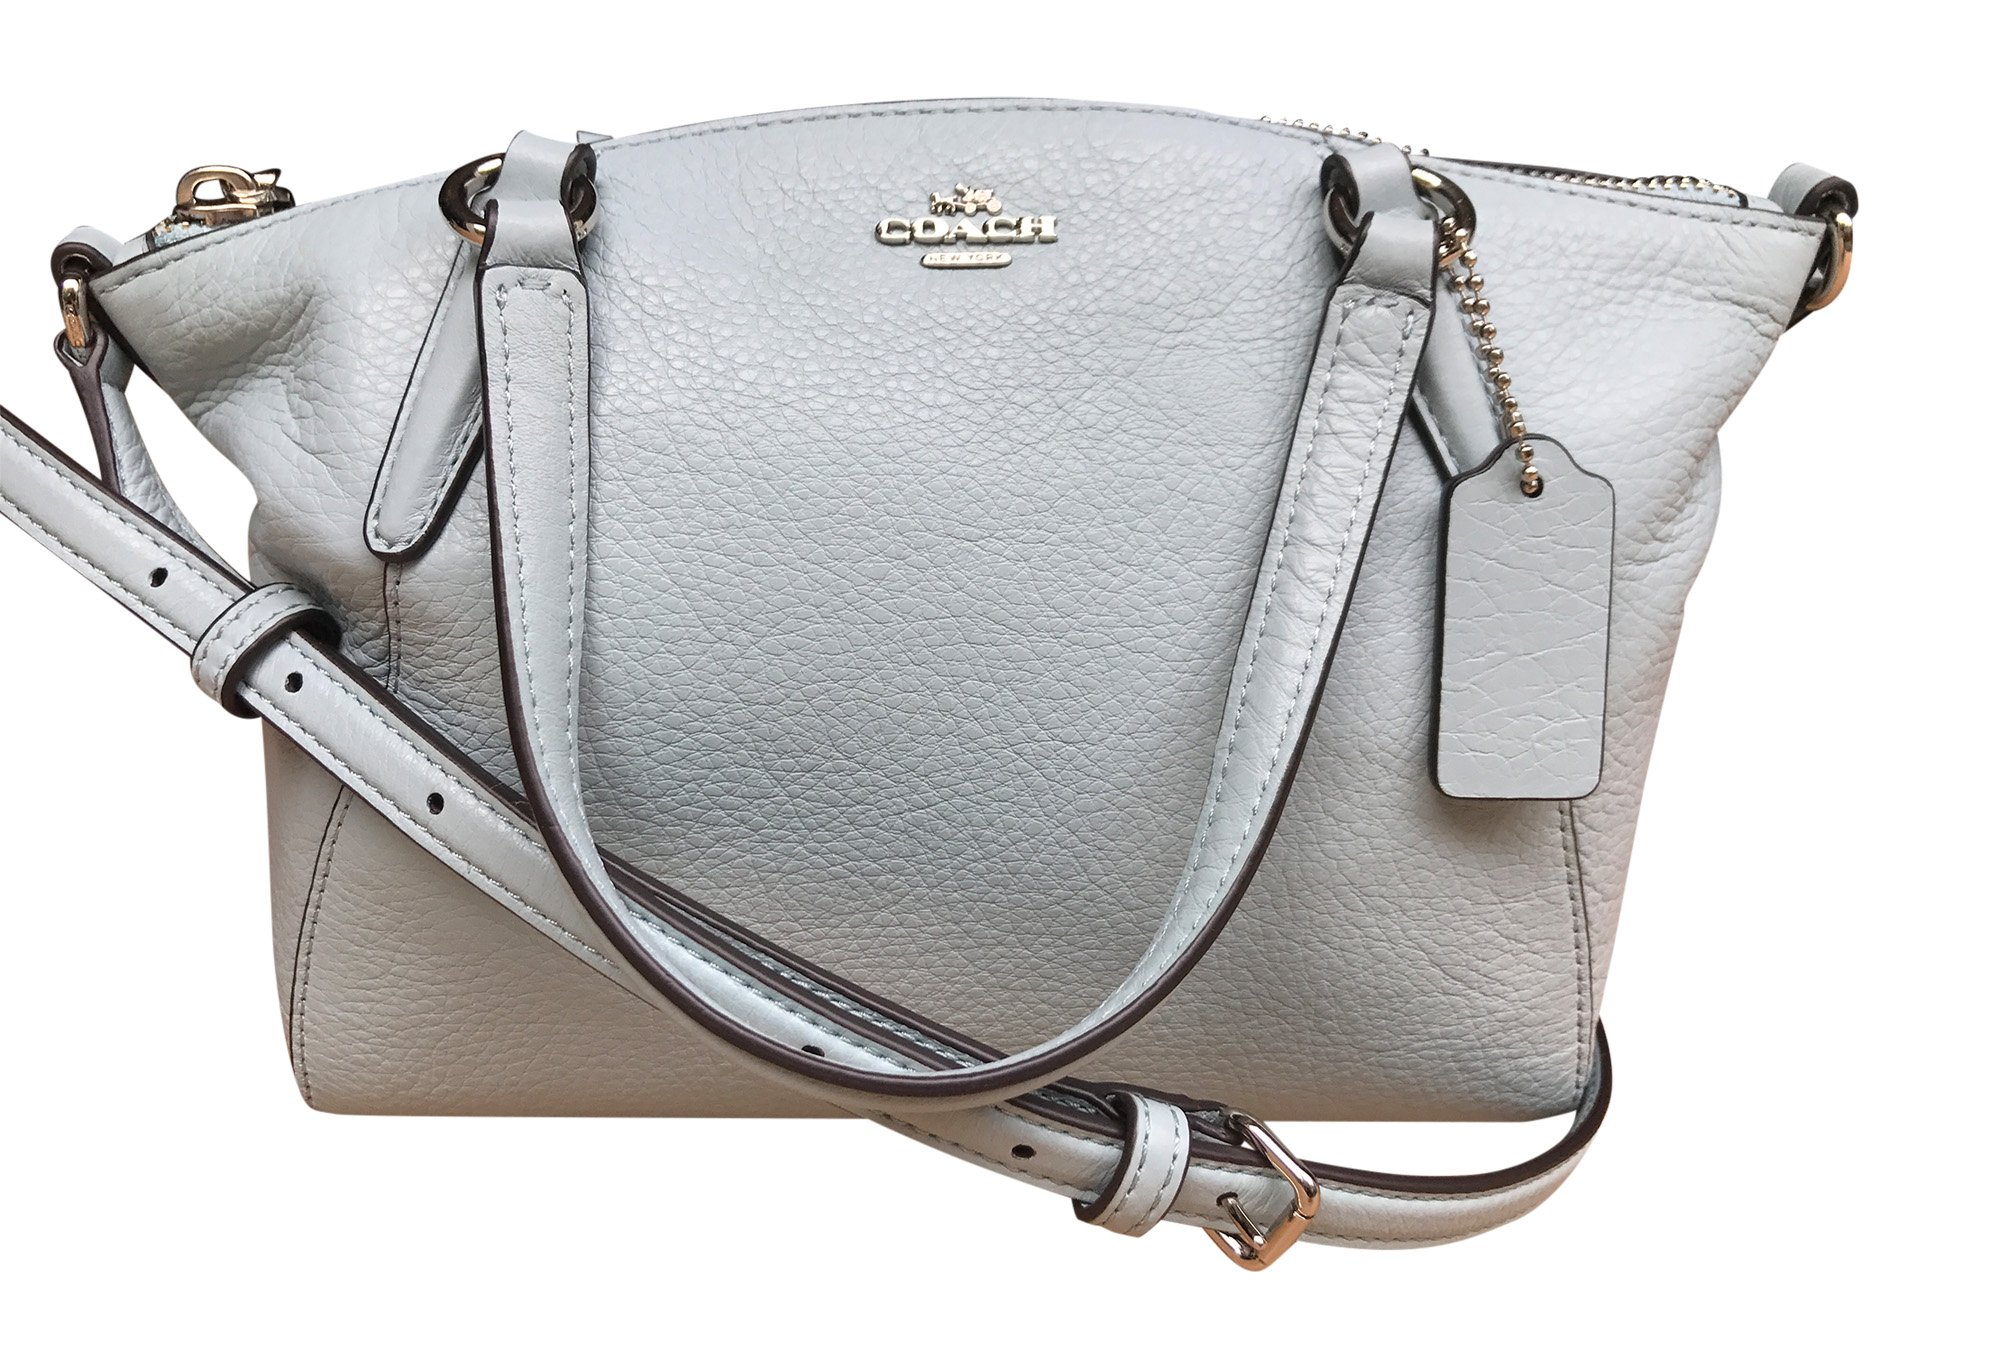 a160b004da782 Get Quotations · Coach Pebble Leather Mini Kelsey Satchel Crossbody Handbag